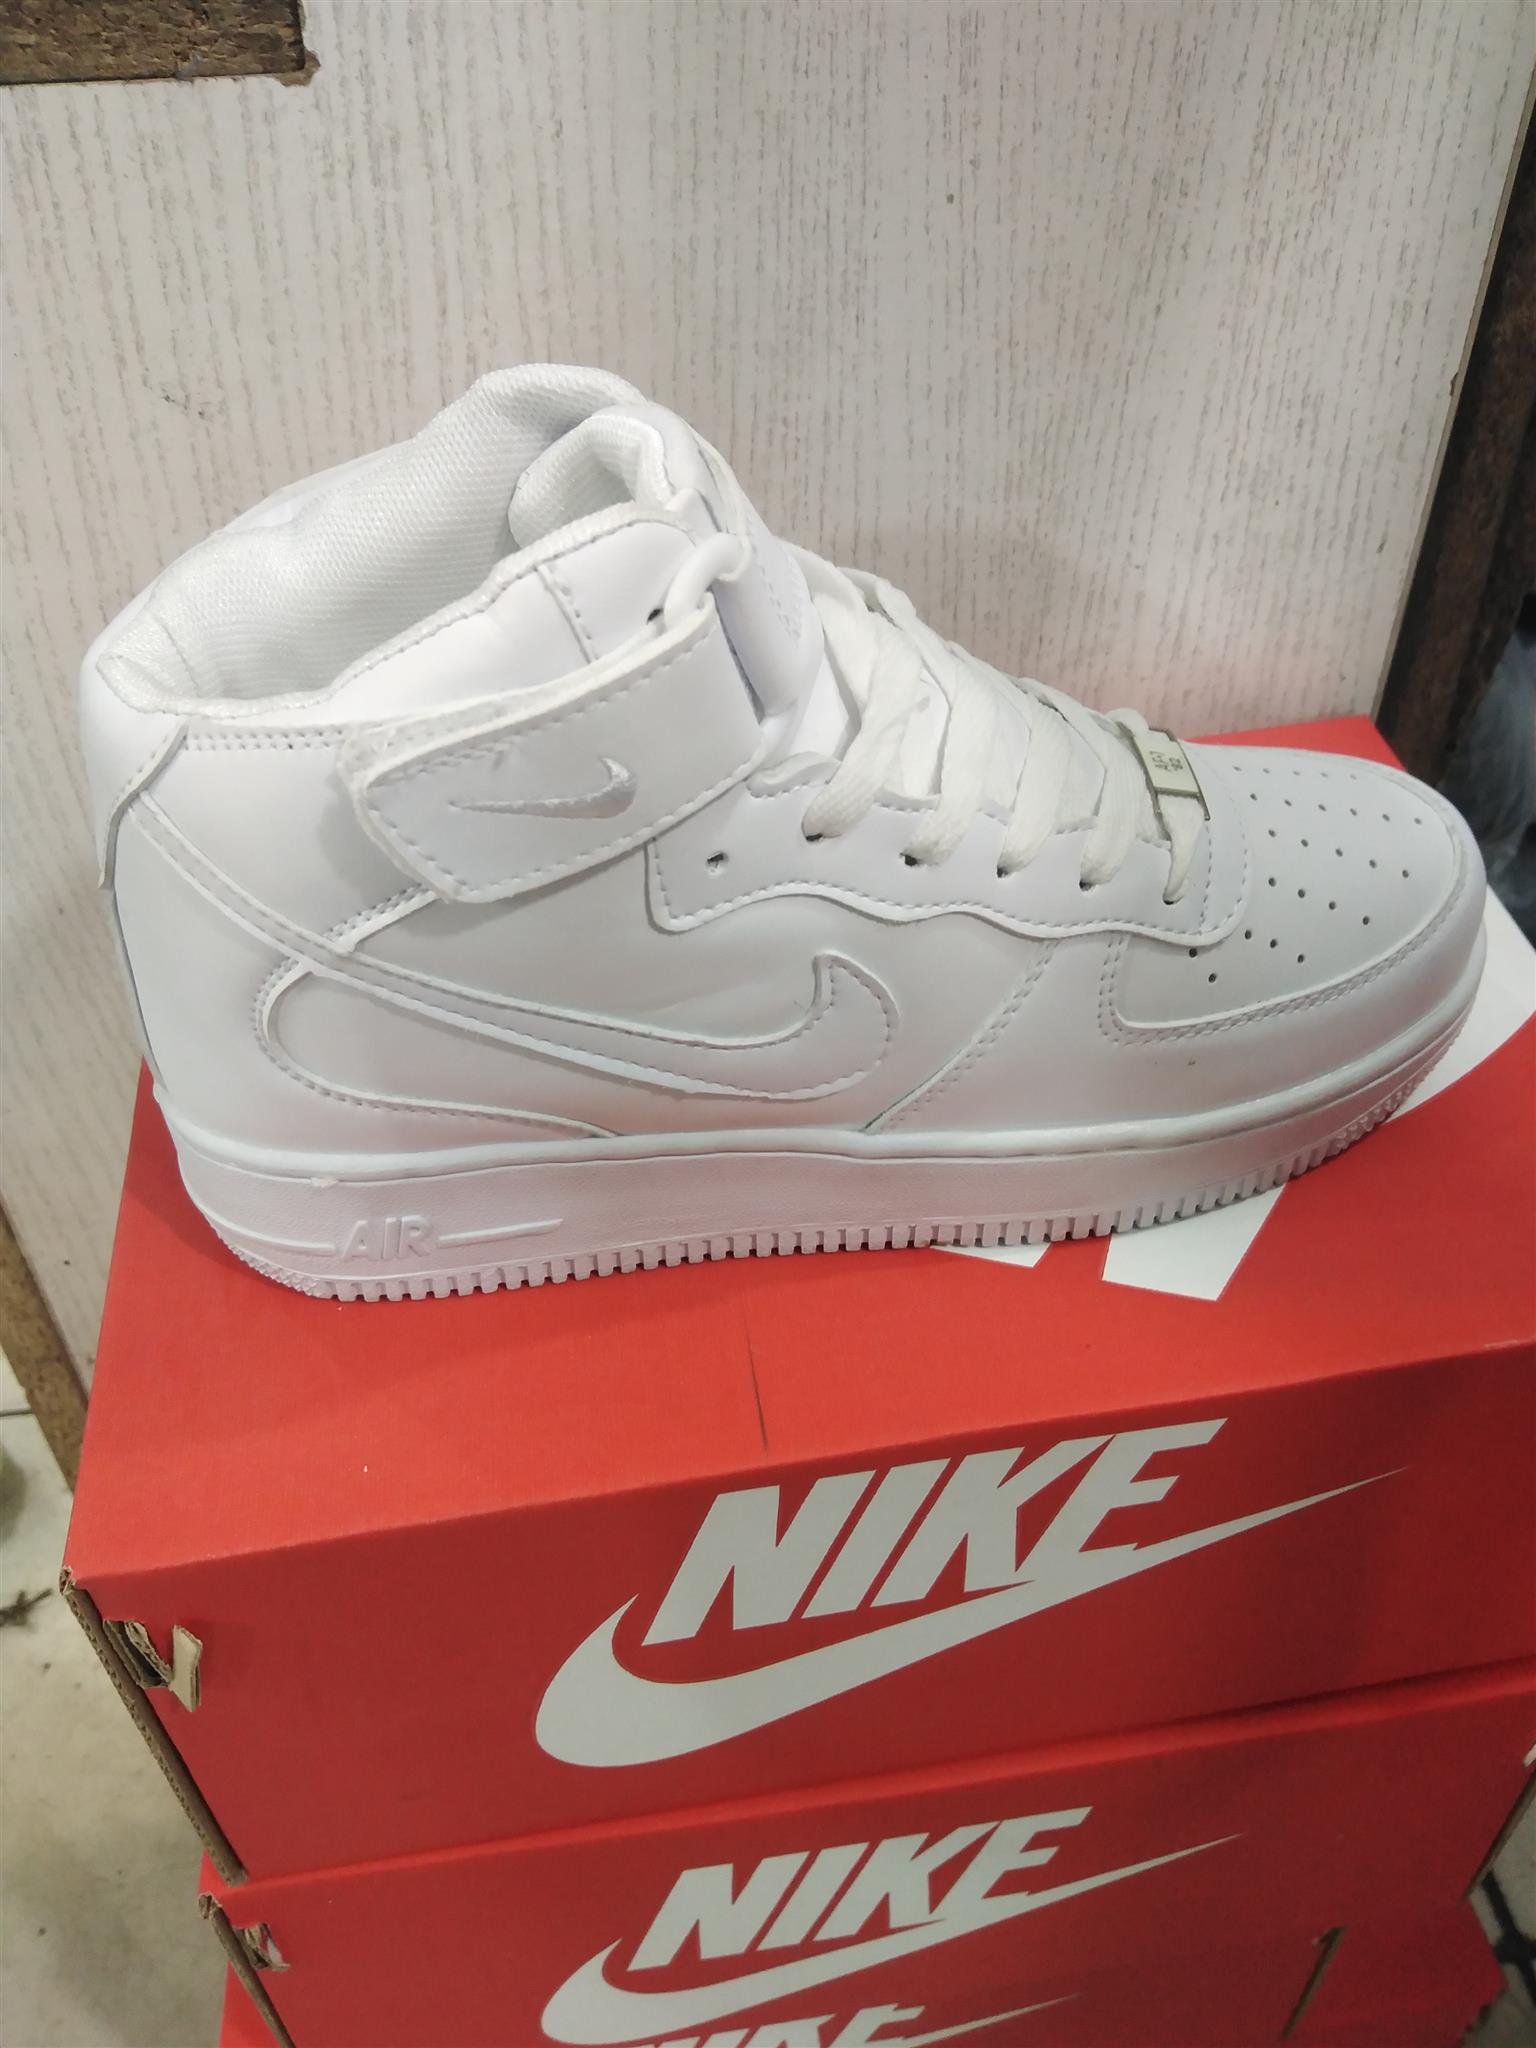 Brand new high quality shoes for sale